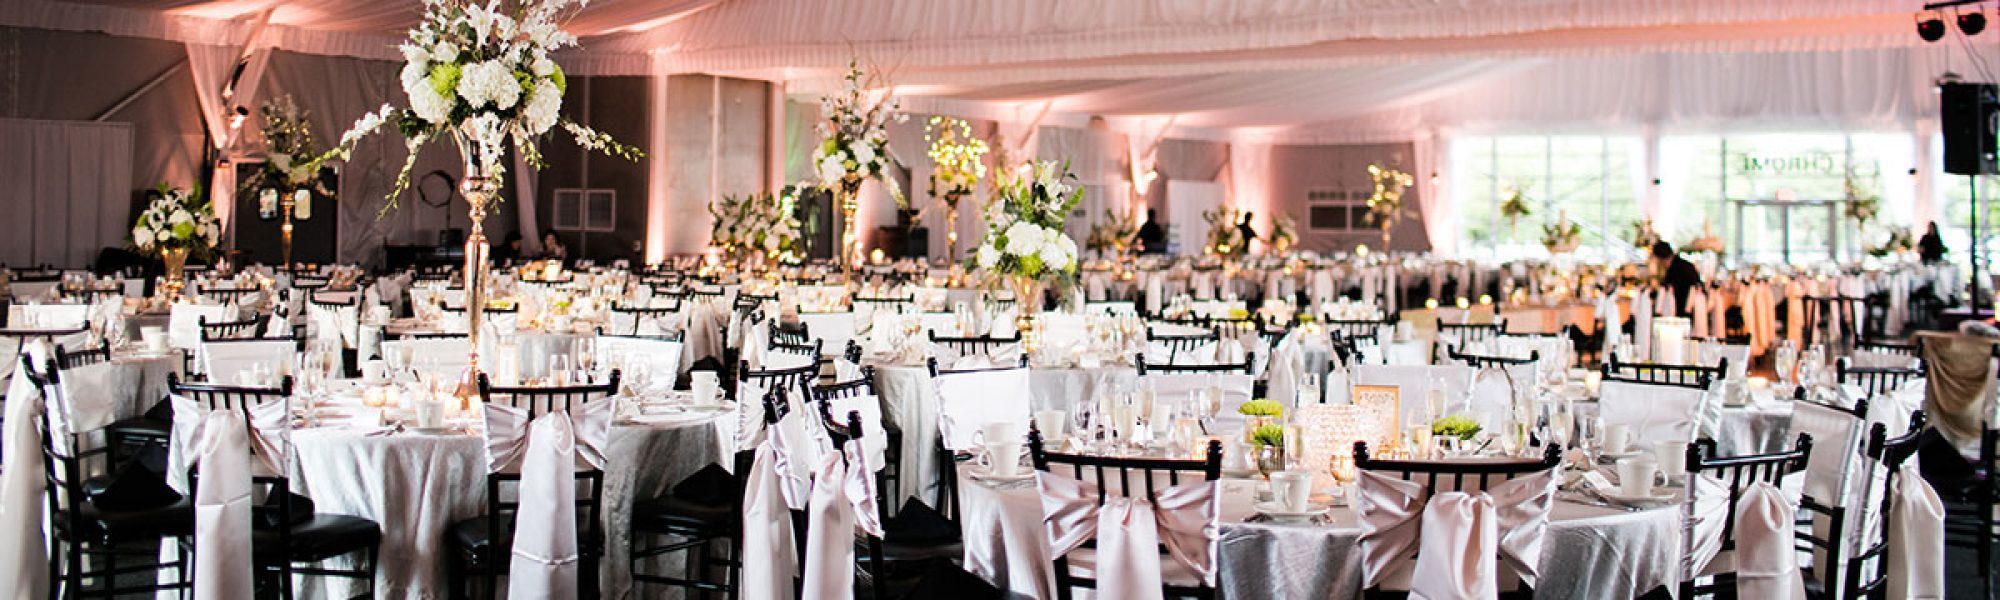 What to know before booking a reception site